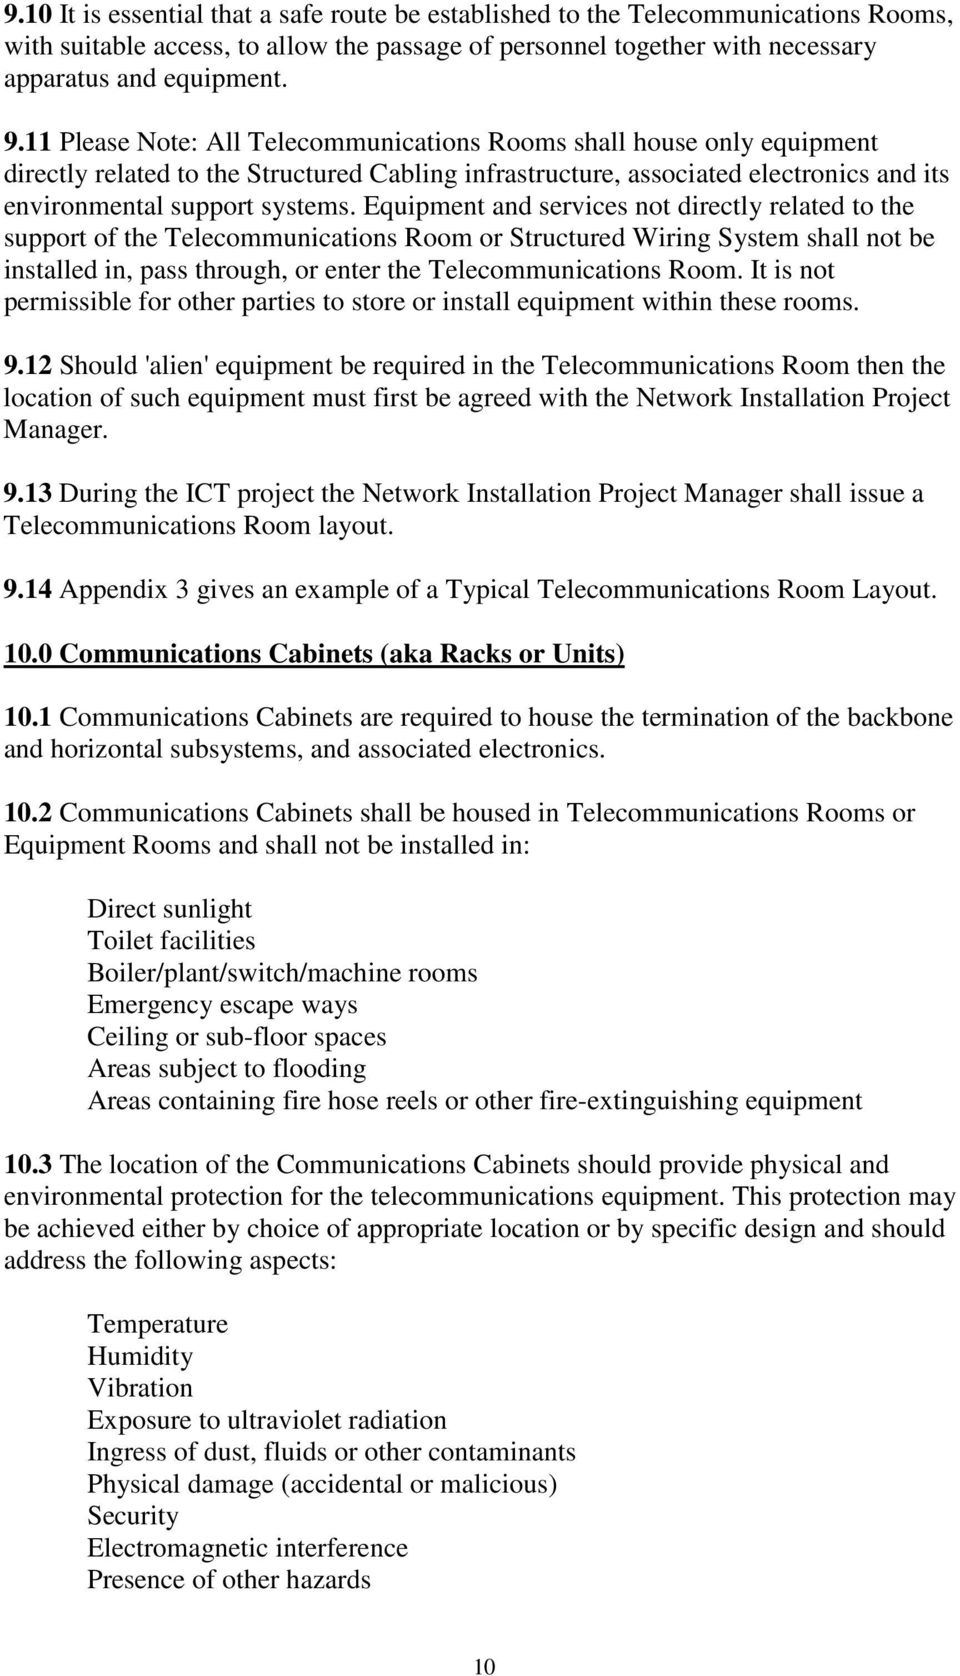 Information Communications Technology Structured Cabling Wiring Cabinet Equipment And Services Not Directly Related To The Support Of Telecommunications Room Or